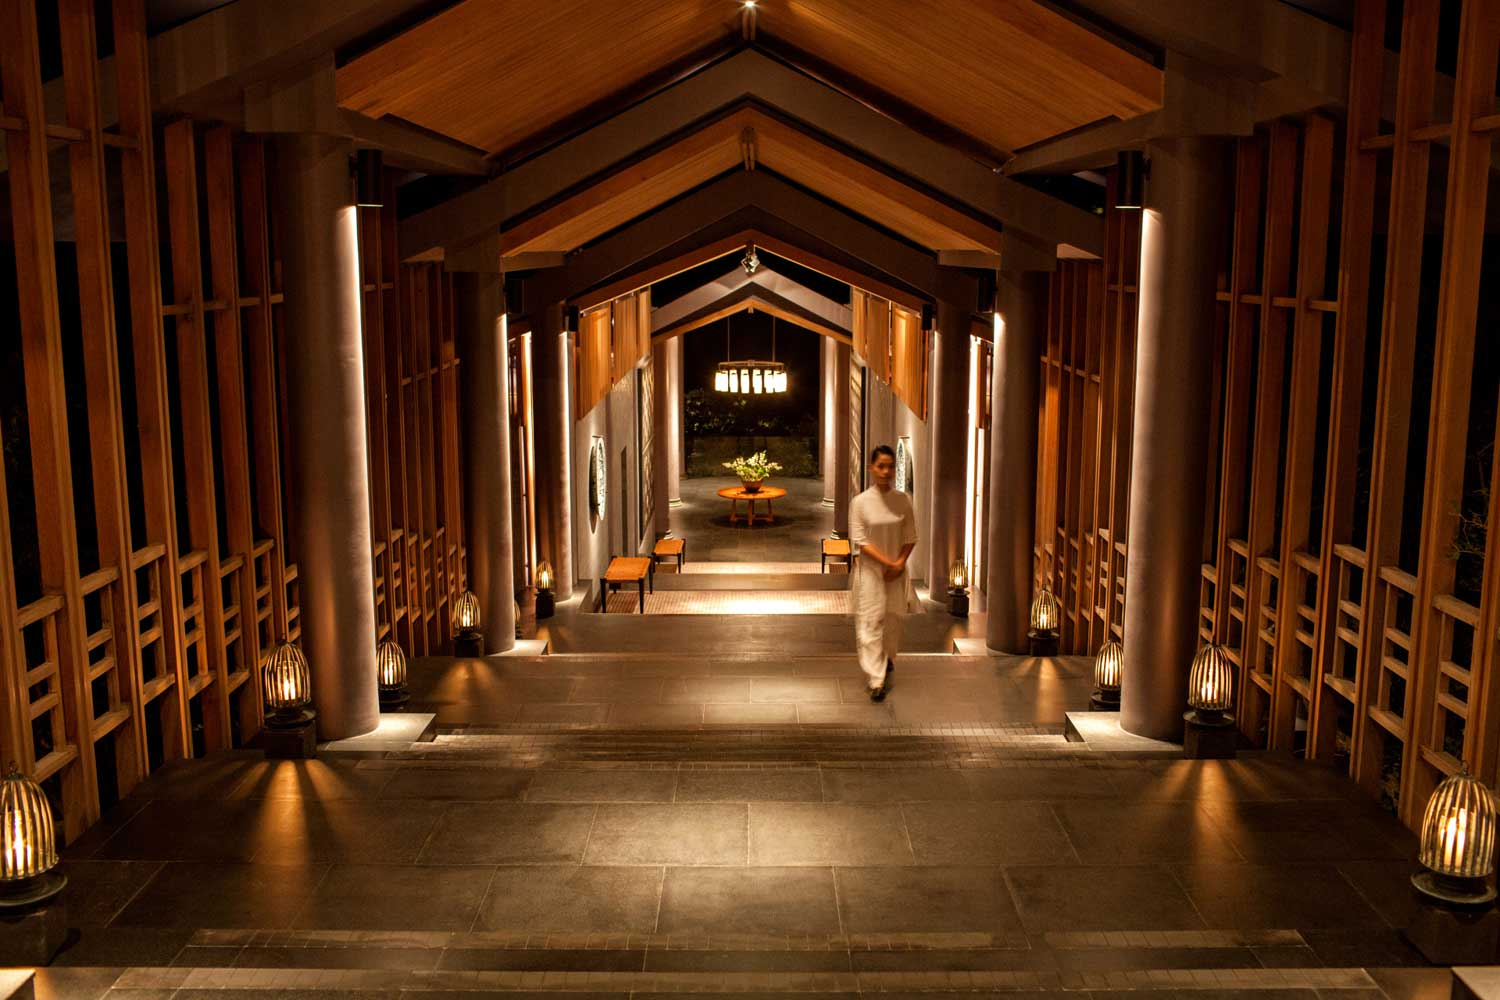 The Amanoi - A Luxurious Haven in Vietnam's Nui Chua National Park 8